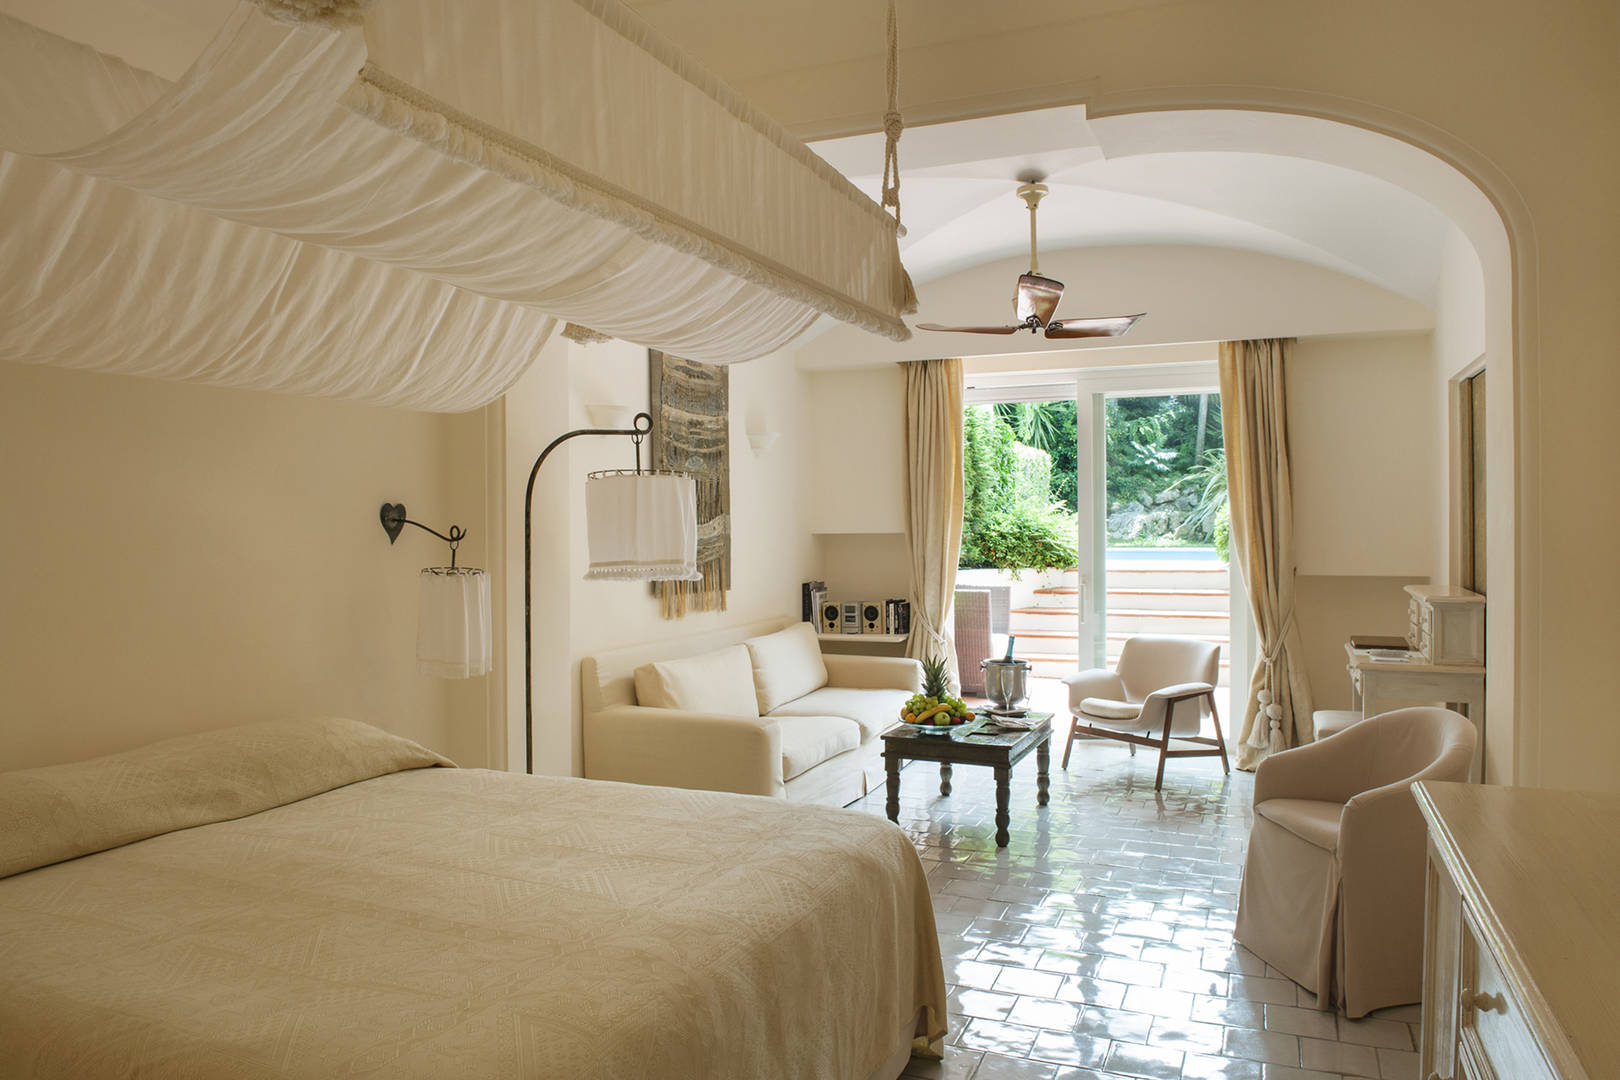 Capri Palace Jumeirah Deluxe Room with Private pool